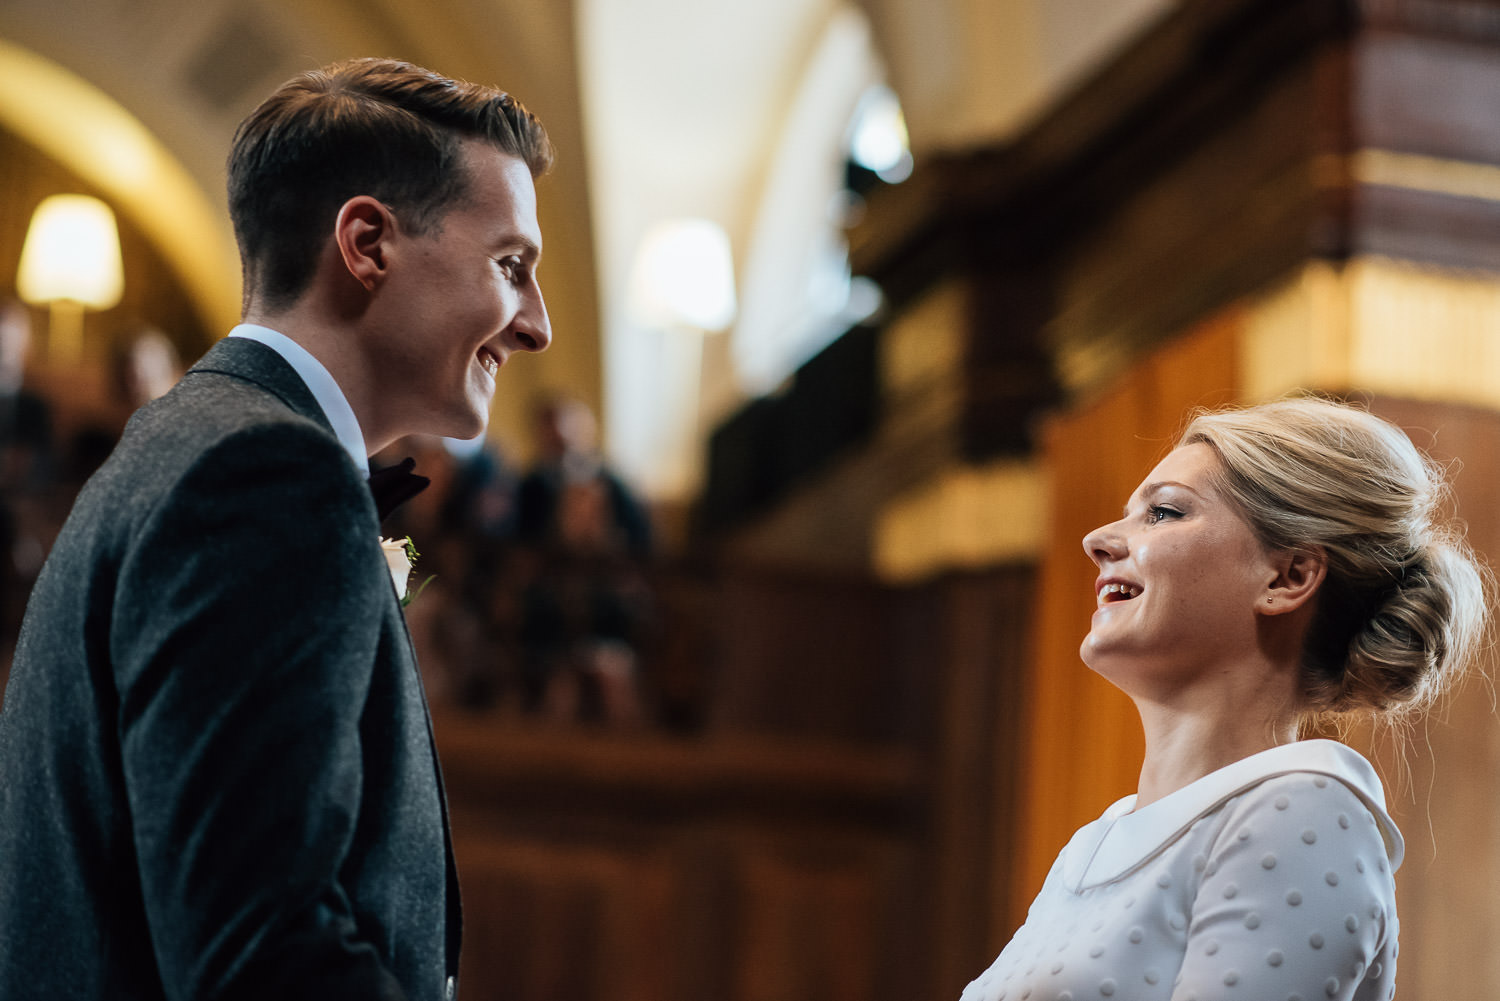 islington town hall wedding by creative and alternative london wedding photographer the shannons photography